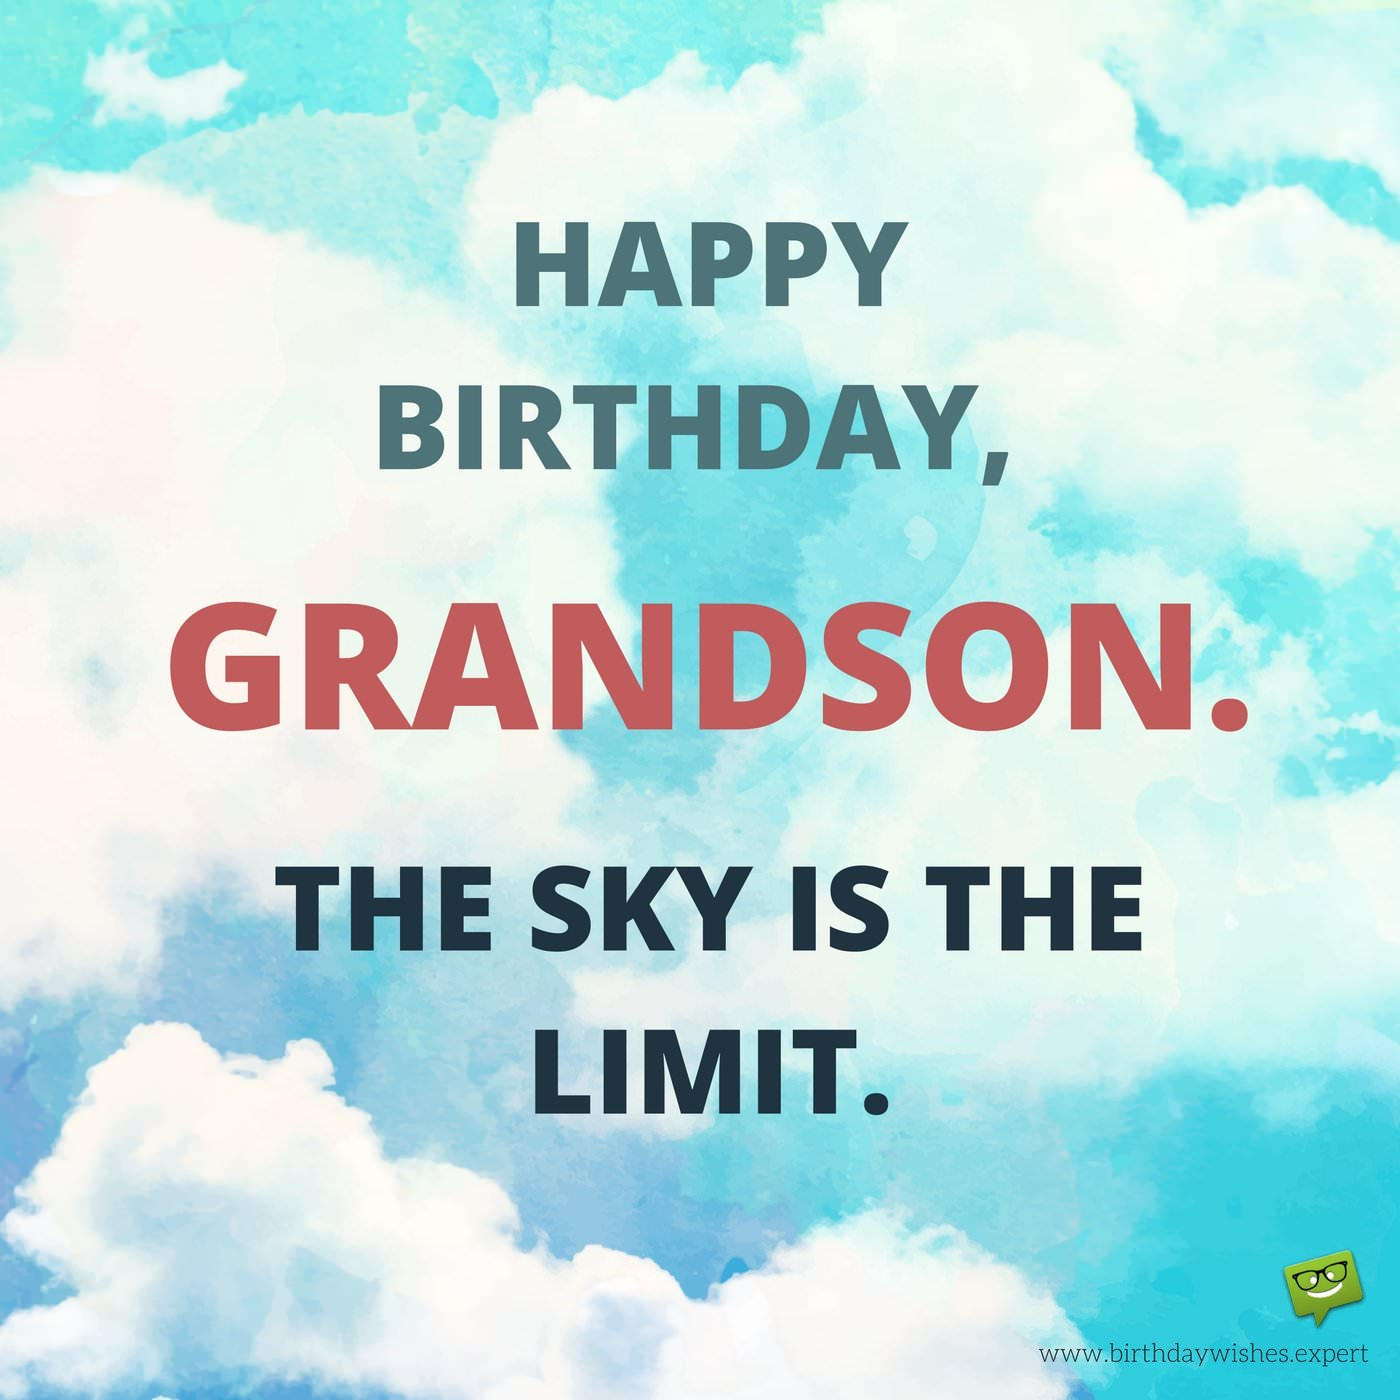 happy birthday grandson the sky is the limit